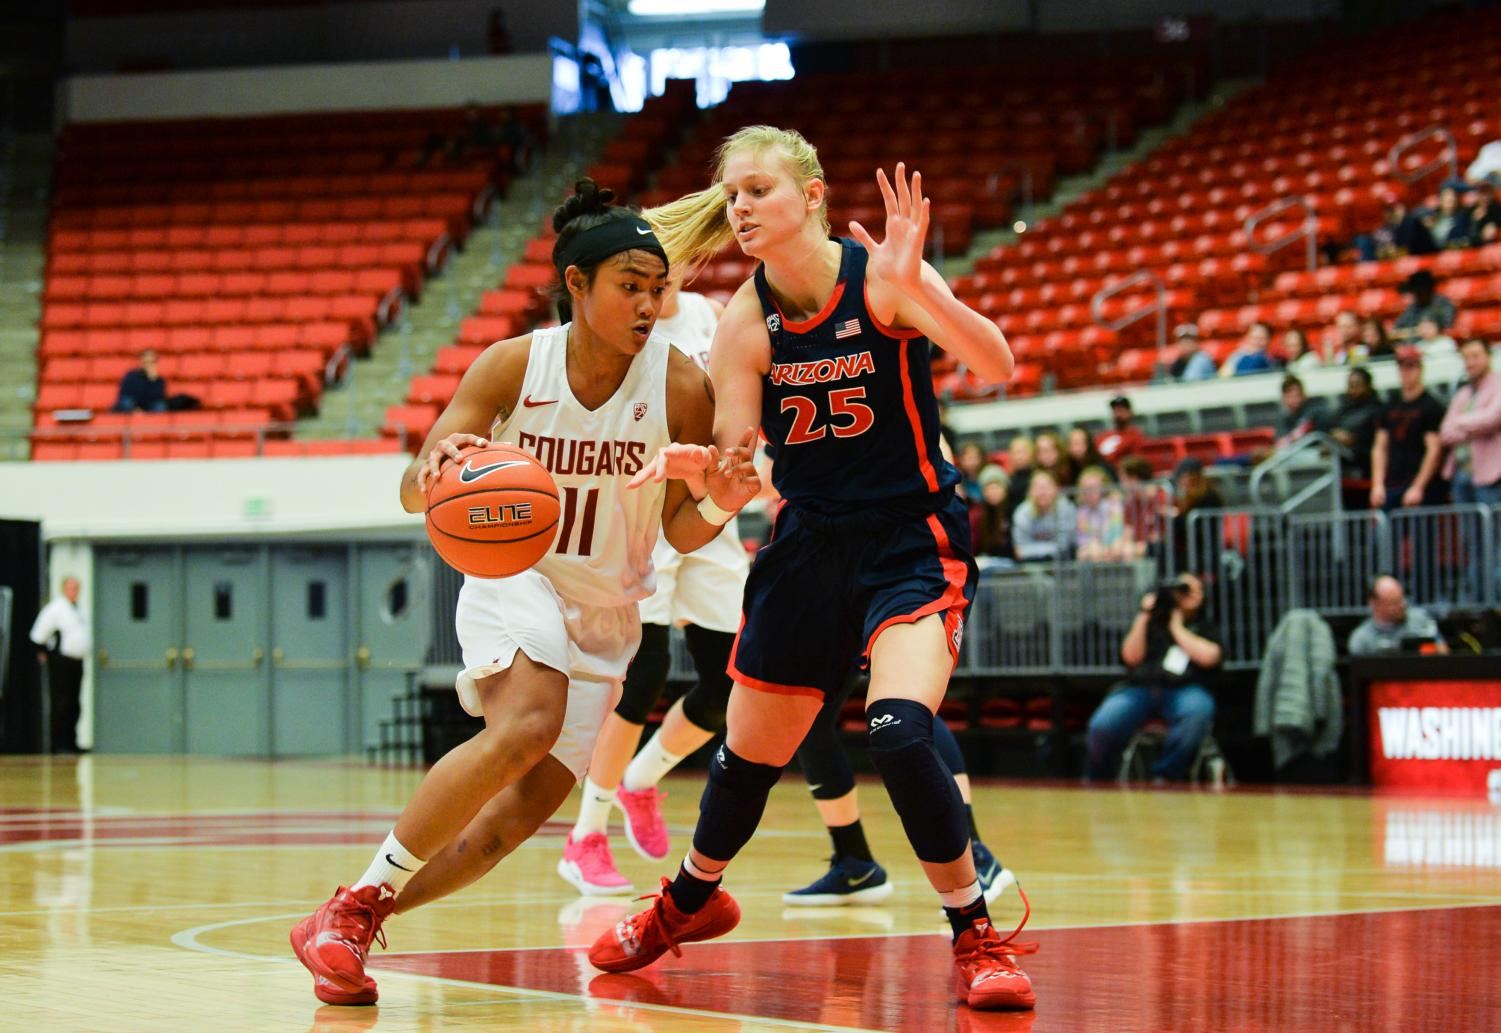 Junior guard Chanelle Molina dribbles past Arizona freshman forward Cate Reese on Feb. 9 at Beasley Coliseum. The game resulted in a 90-88 win for the Cougars.